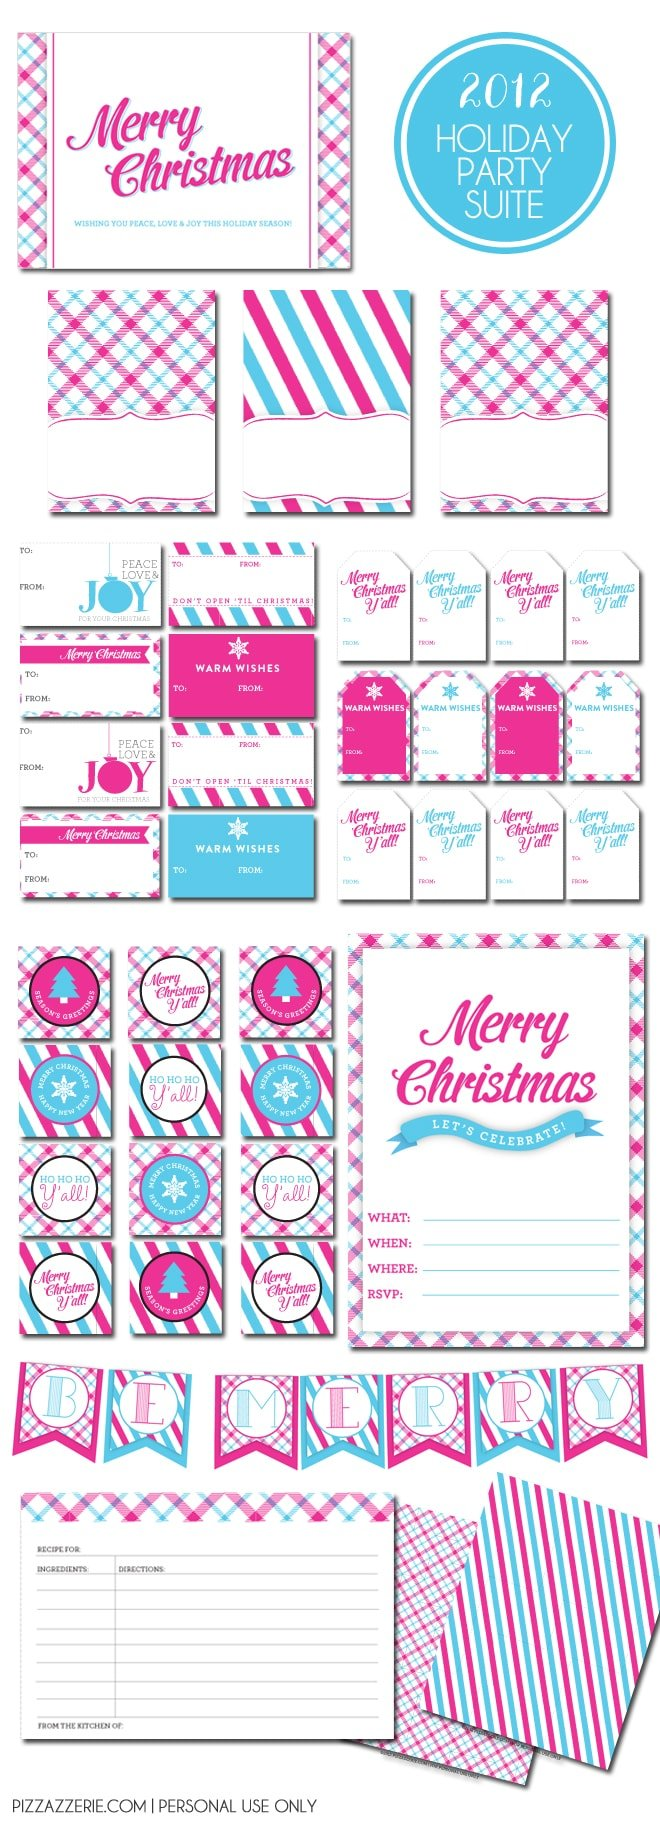 Free Holiday Printable Suite in Modern Pink & Aqua!